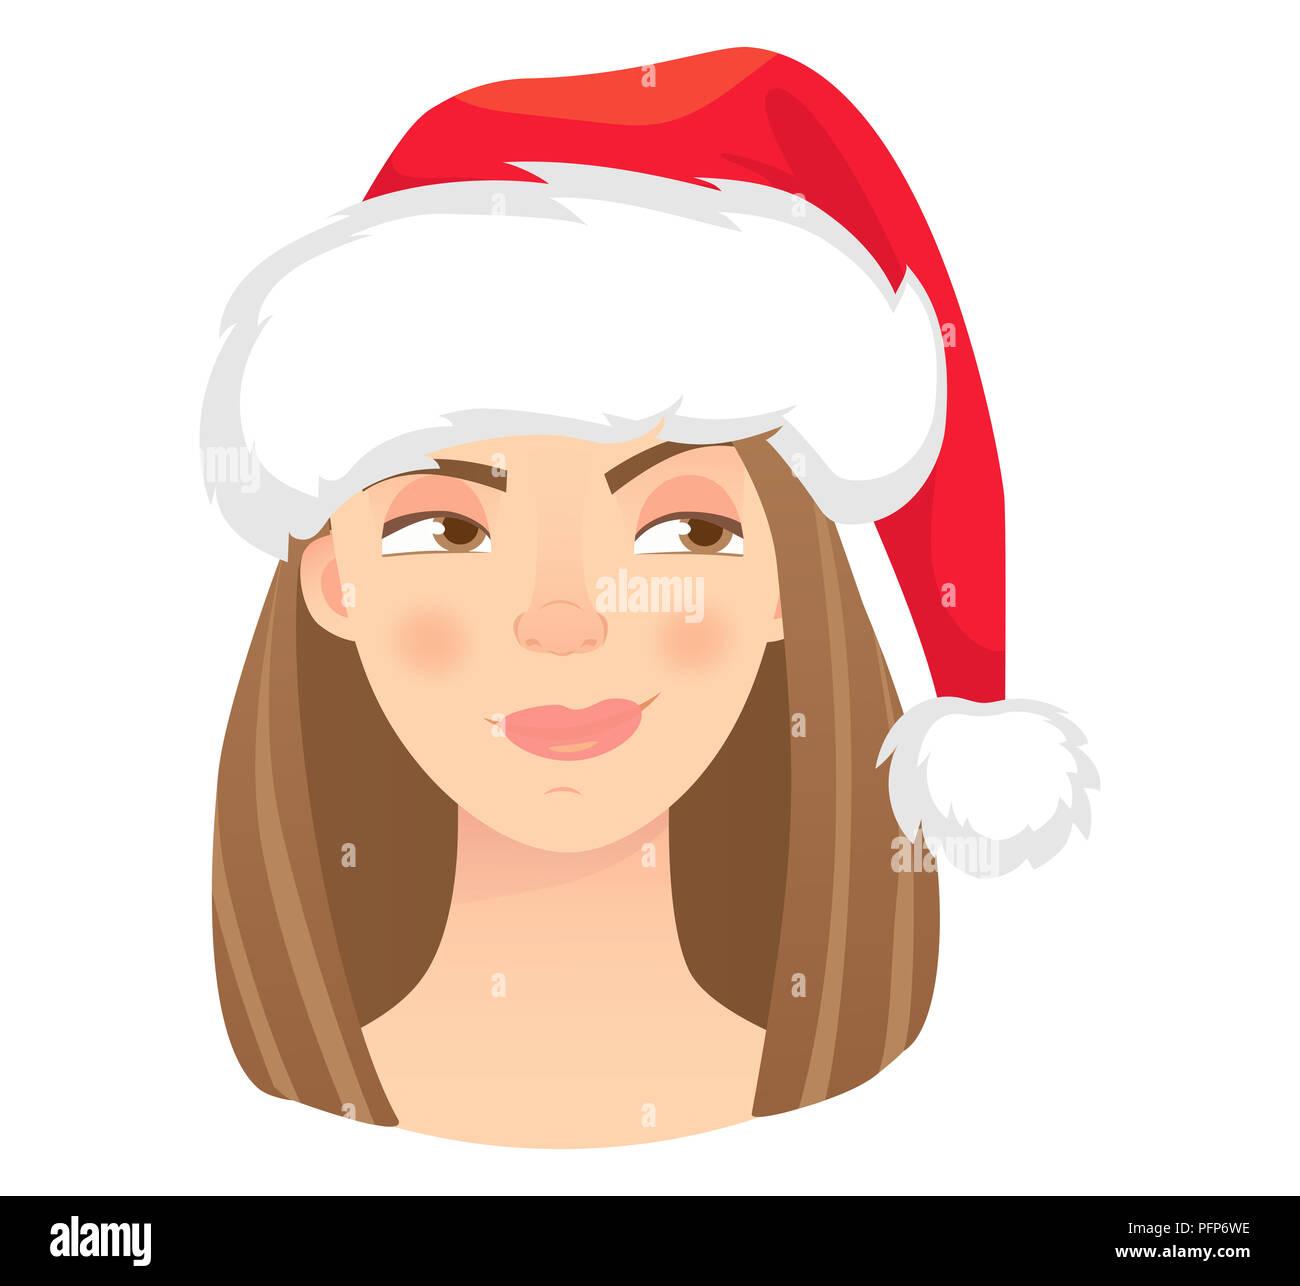 Christmas woman in santa claus hat. Emotions of woman face. Facial expression illustration - Stock Image